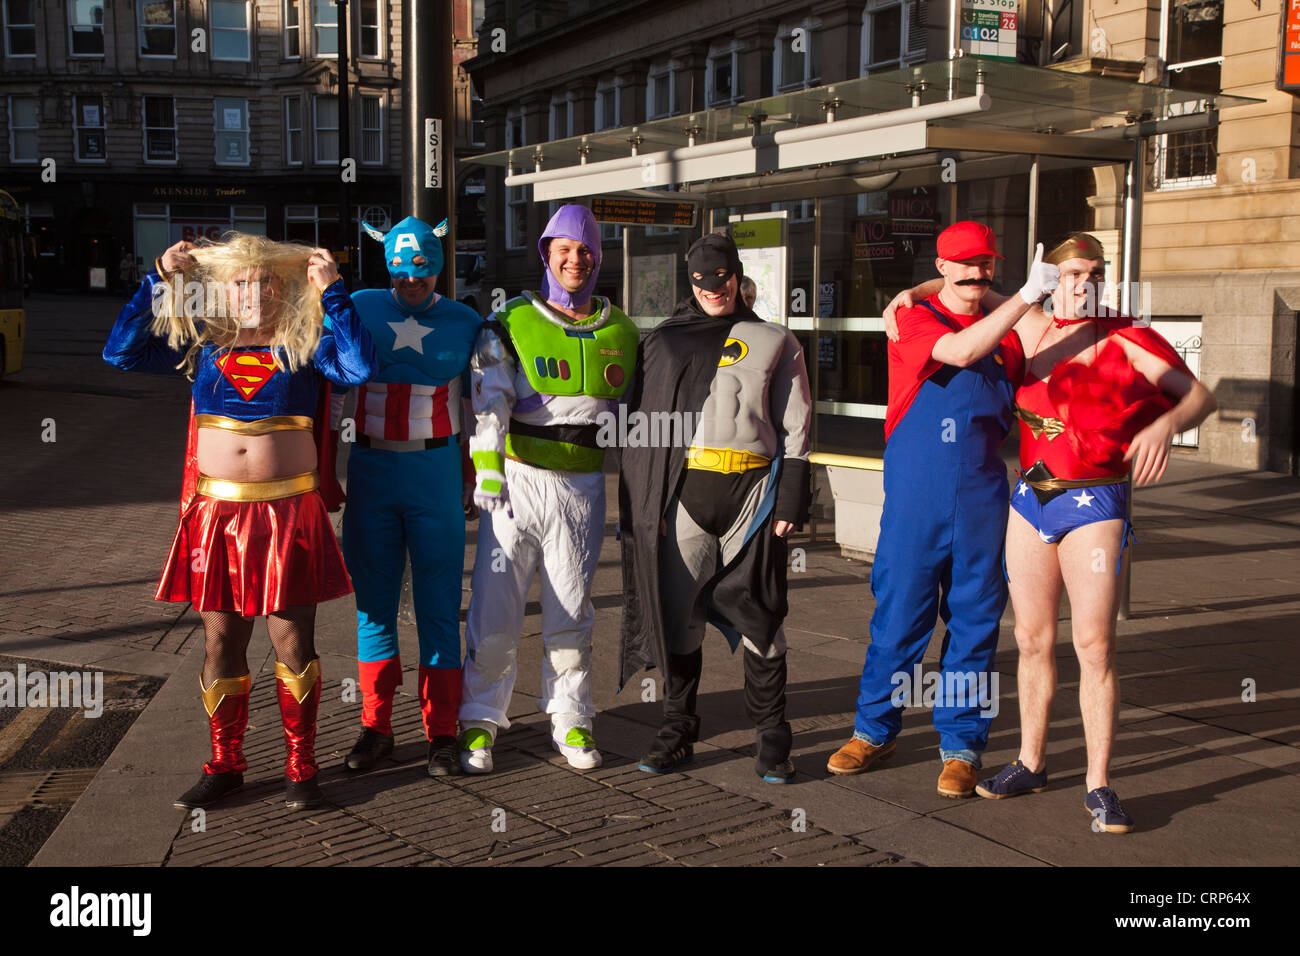 A group of men dressed as super heros and animated characters on a stag weekend. Stock Photo